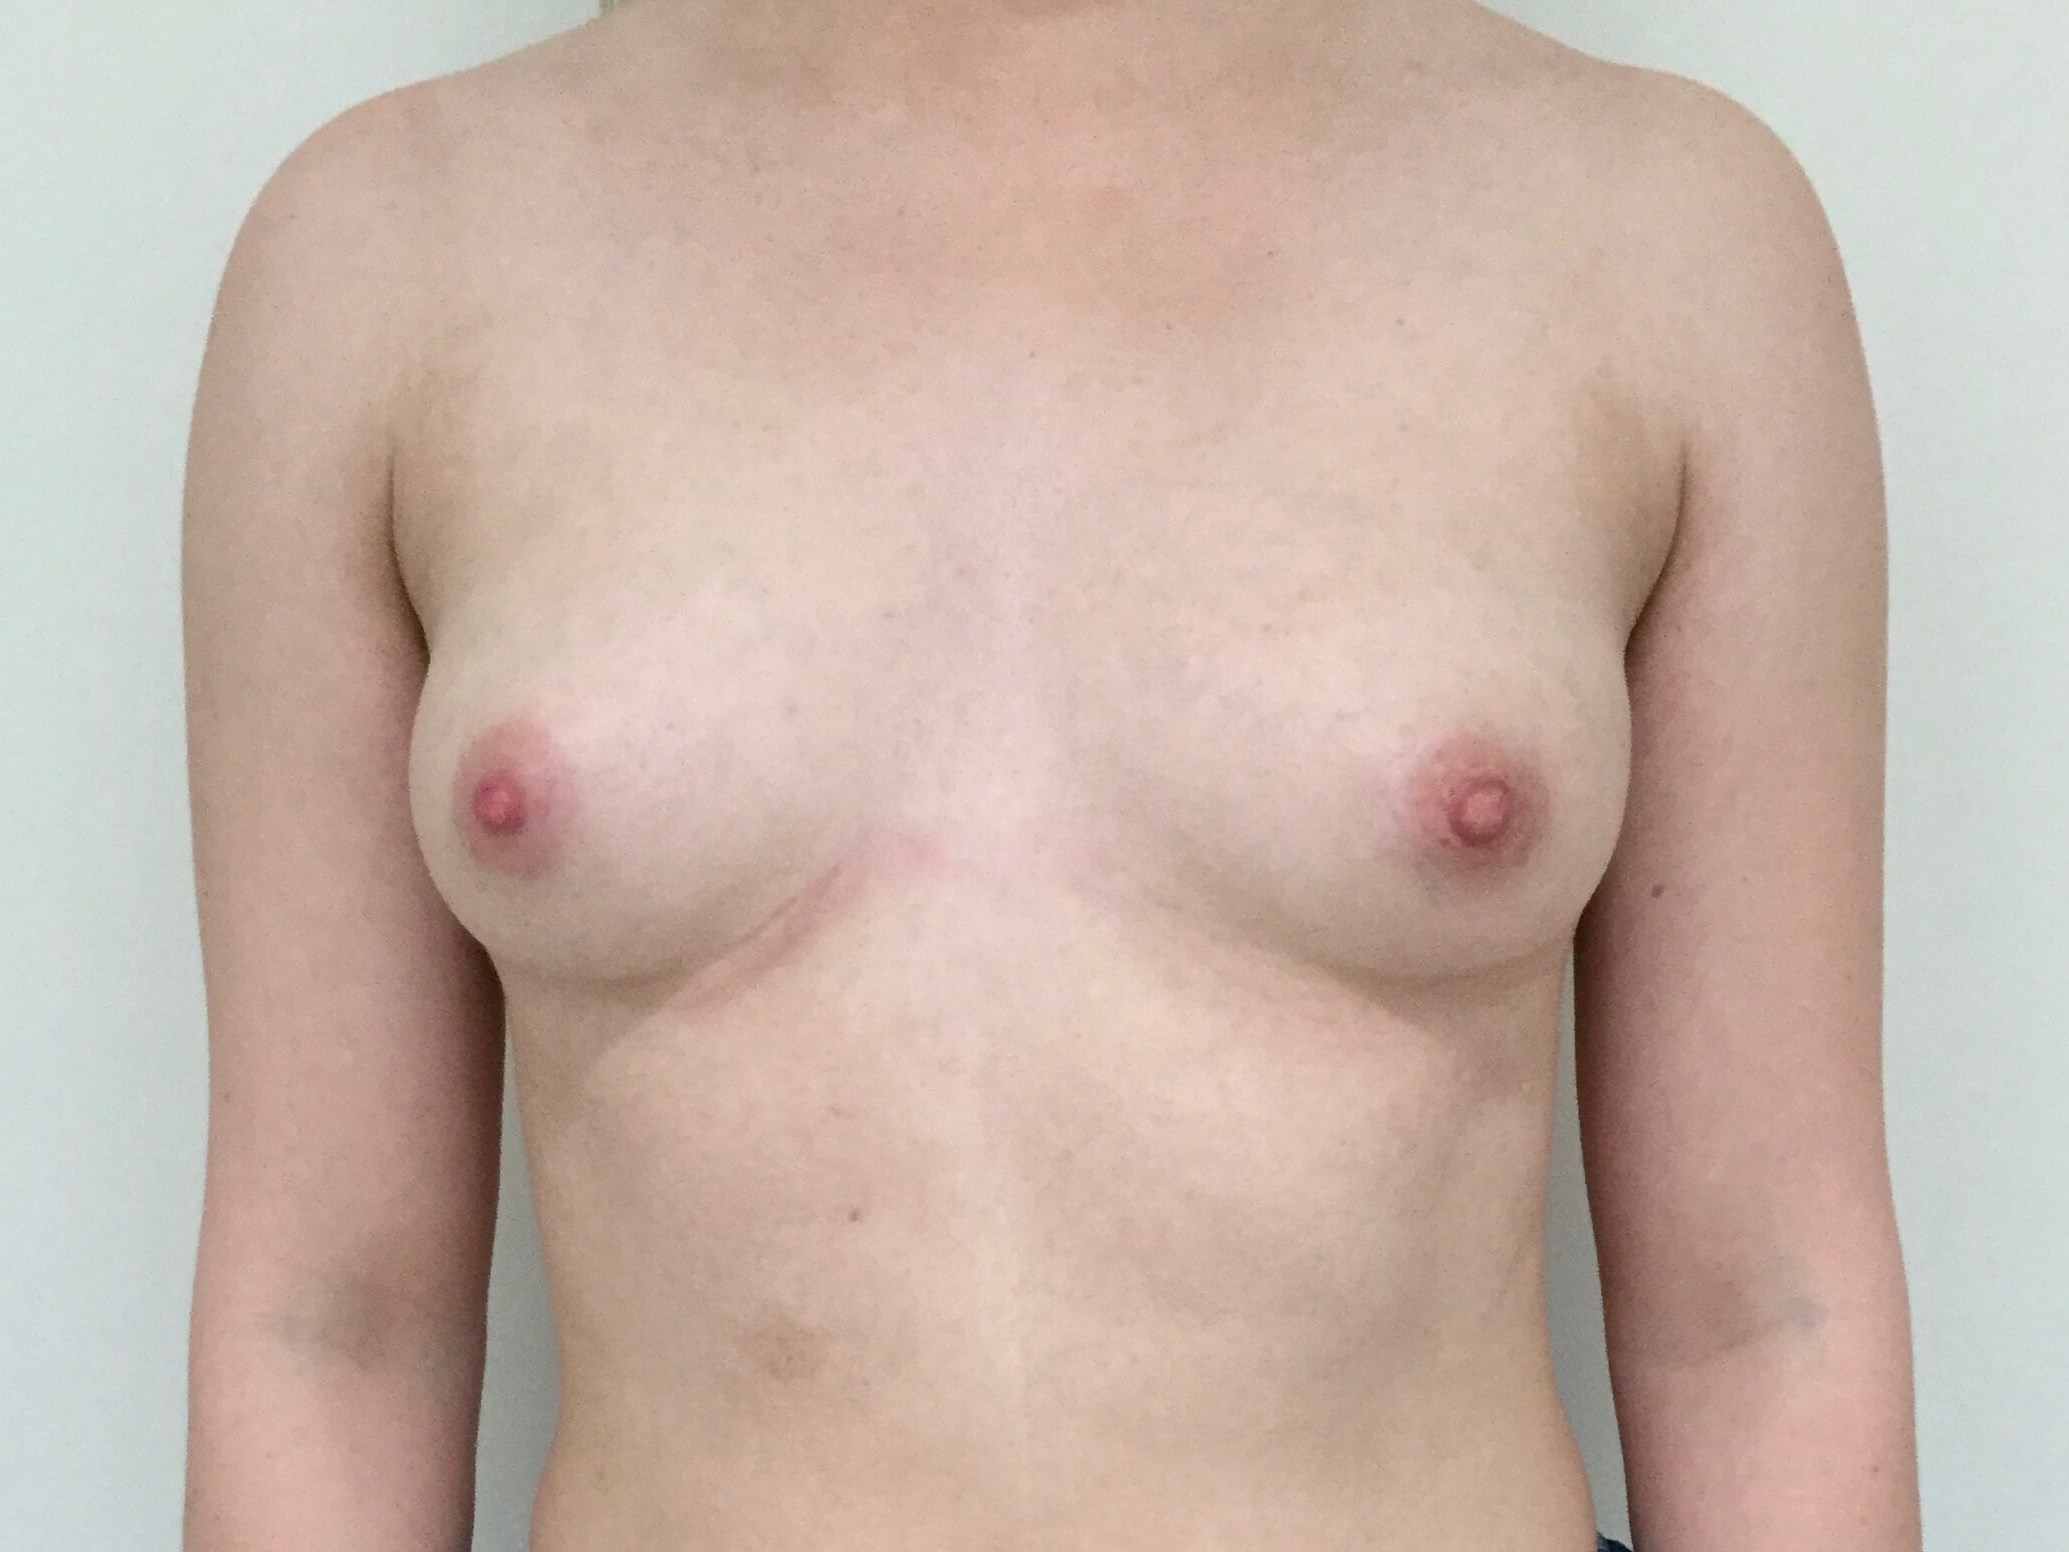 DALLAS, TEXAS WOMAN HAS BREAST AUGMENTATION WITH SILICONE GEL IMPLANTS